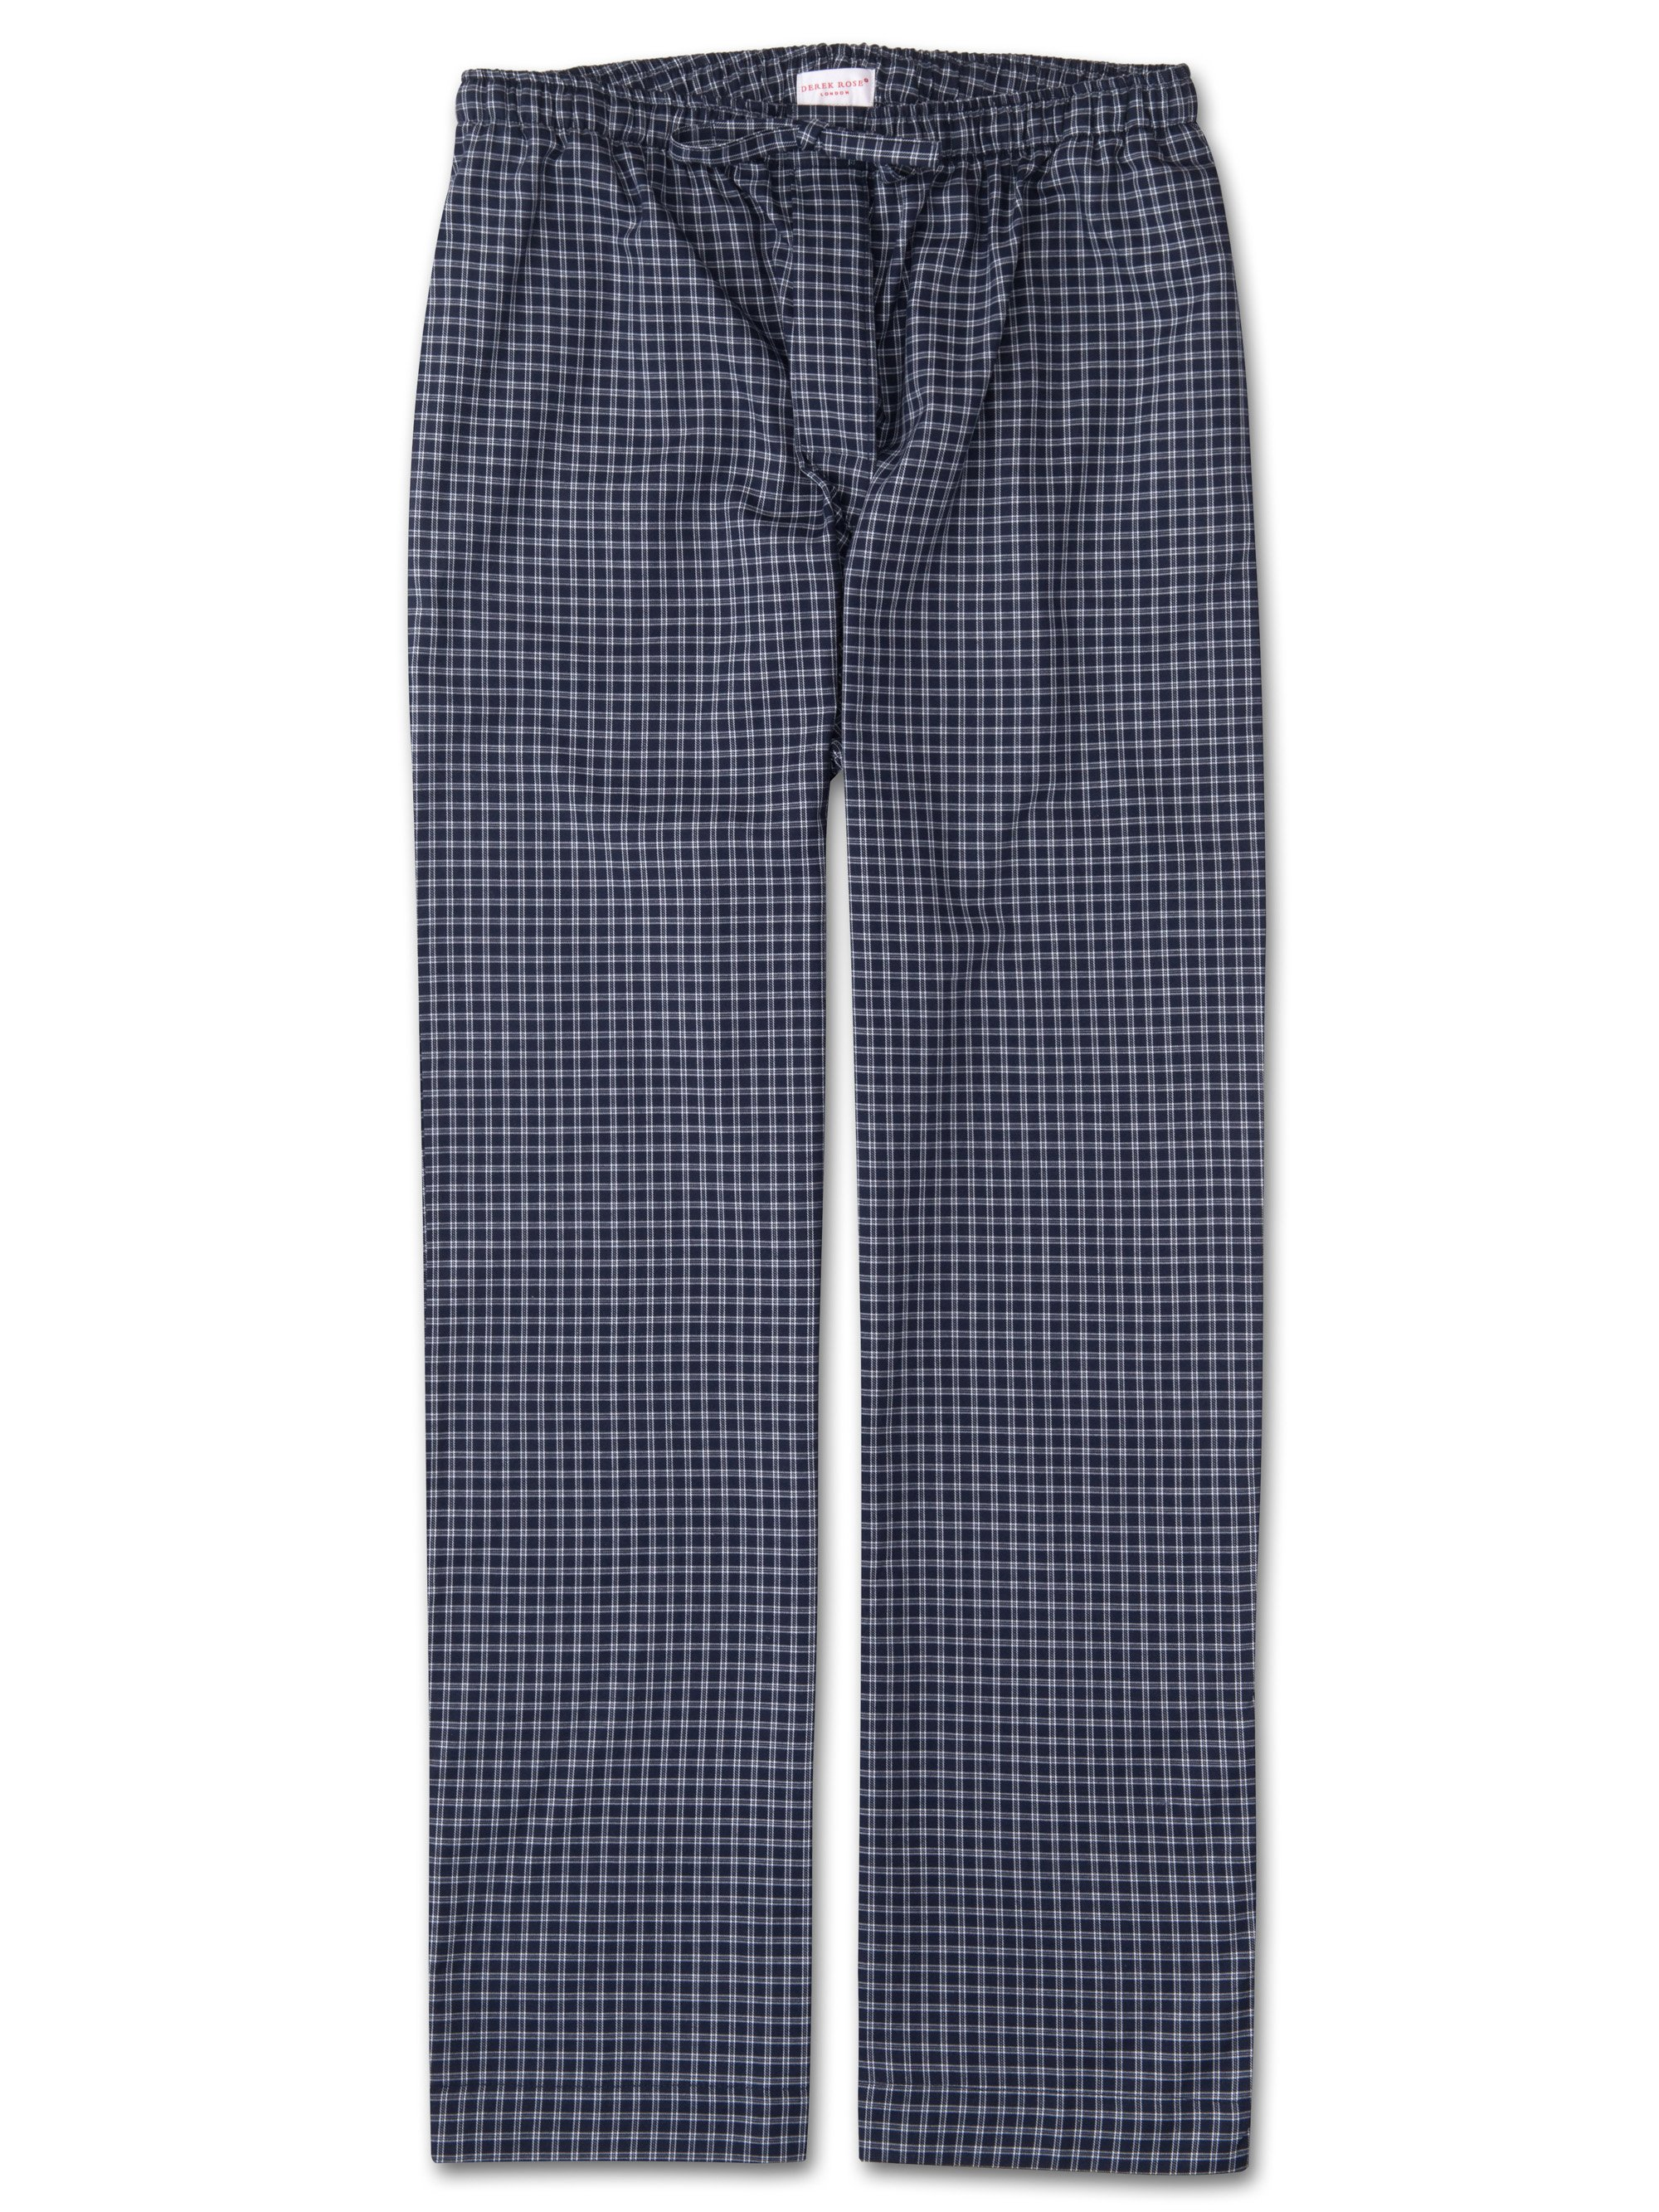 Navy and white checked brushed cotton pyjama bottoms